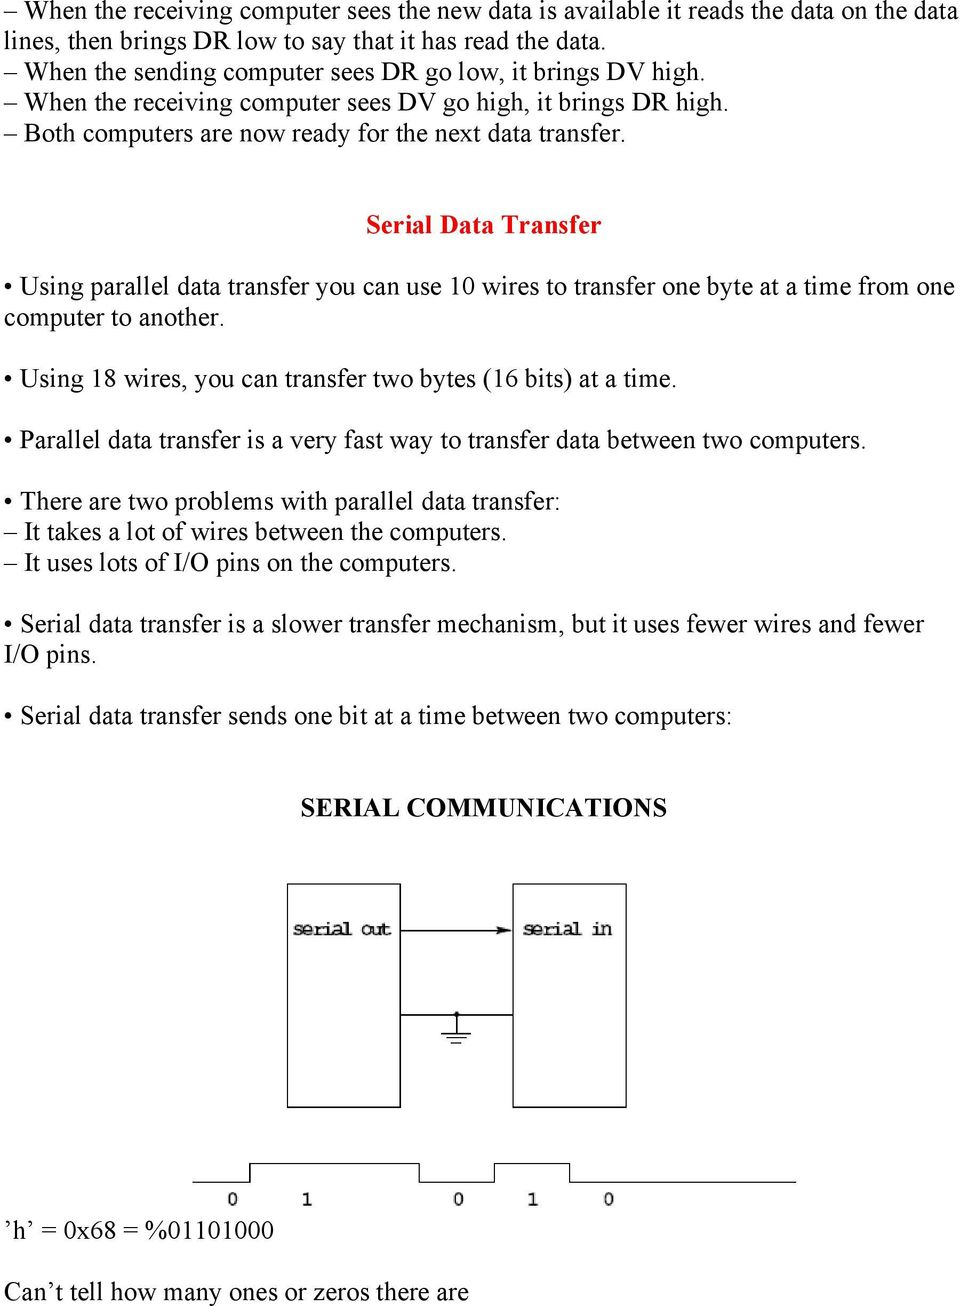 Serial Data Transfer Using parallel data transfer you can use 10 wires to transfer one byte at a time from one computer to another. Using 18 wires, you can transfer two bytes (16 bits) at a time.